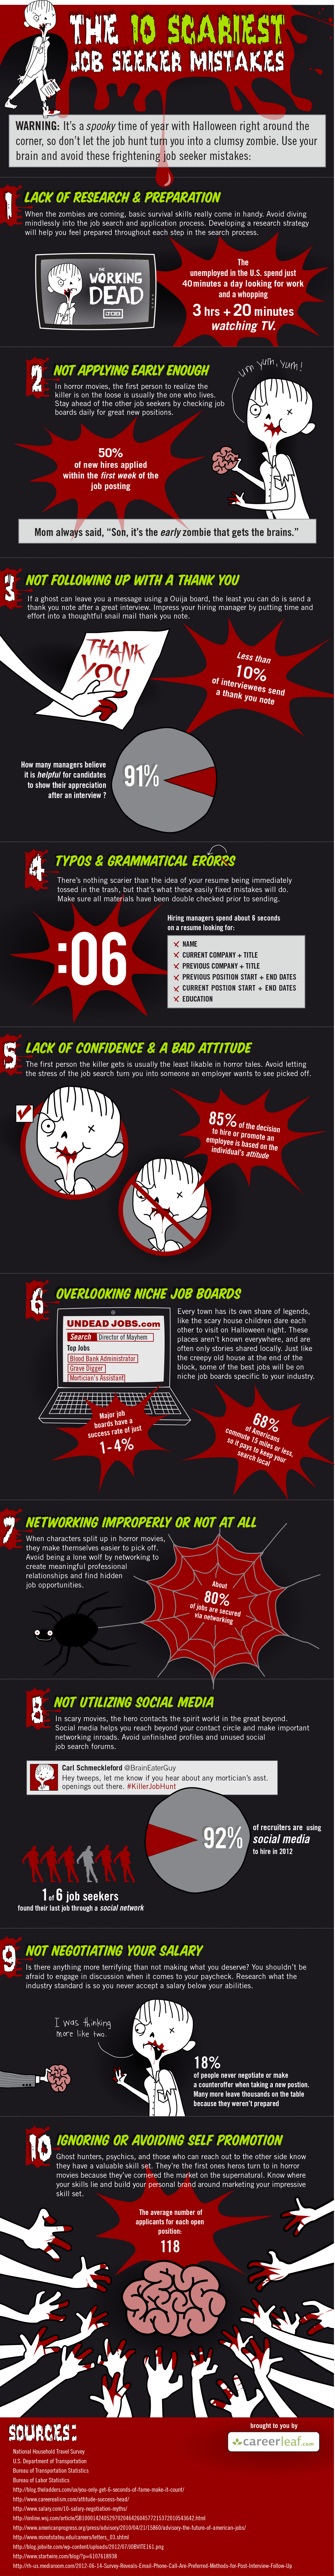 10 Scariest Job Seeker Mistakes Infographic - Careerleaf